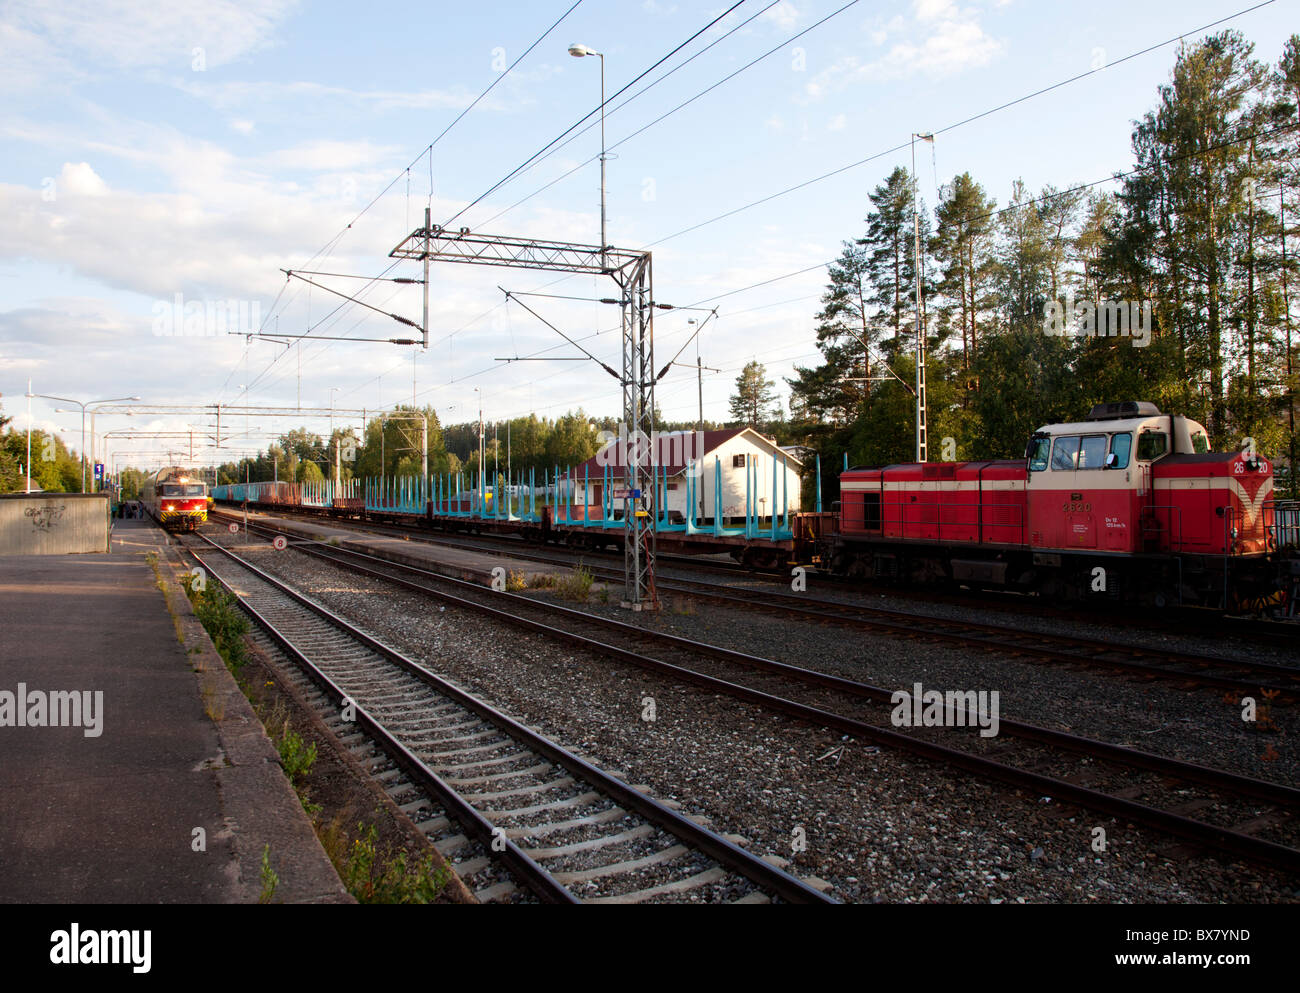 Railway station and cargo train waiting for the oncoming passenger train to pass it , Finland - Stock Image